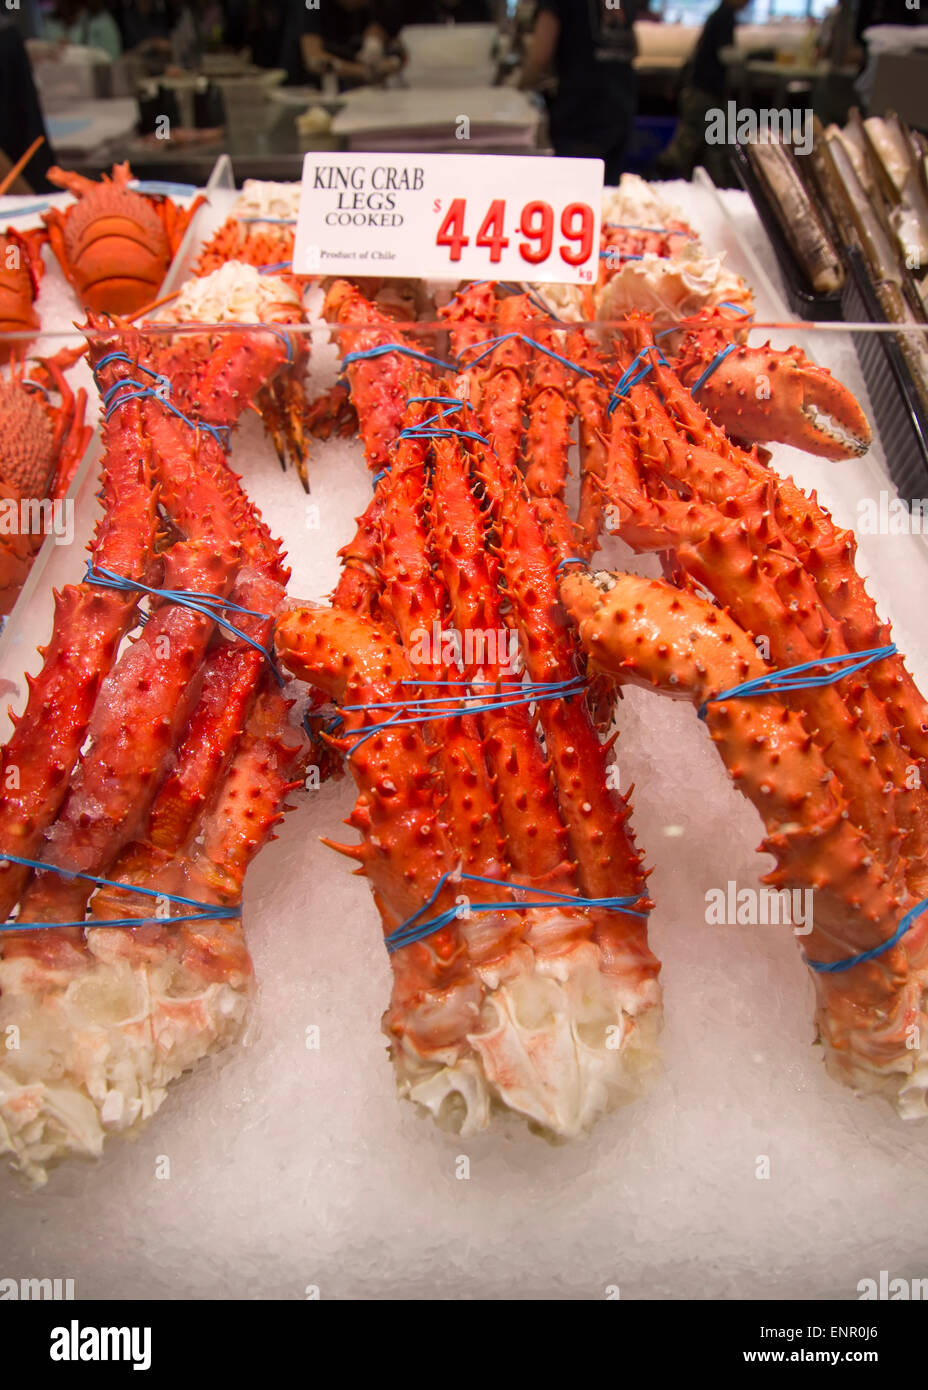 King crab legs on the sydney fish market stock photo for King fish market